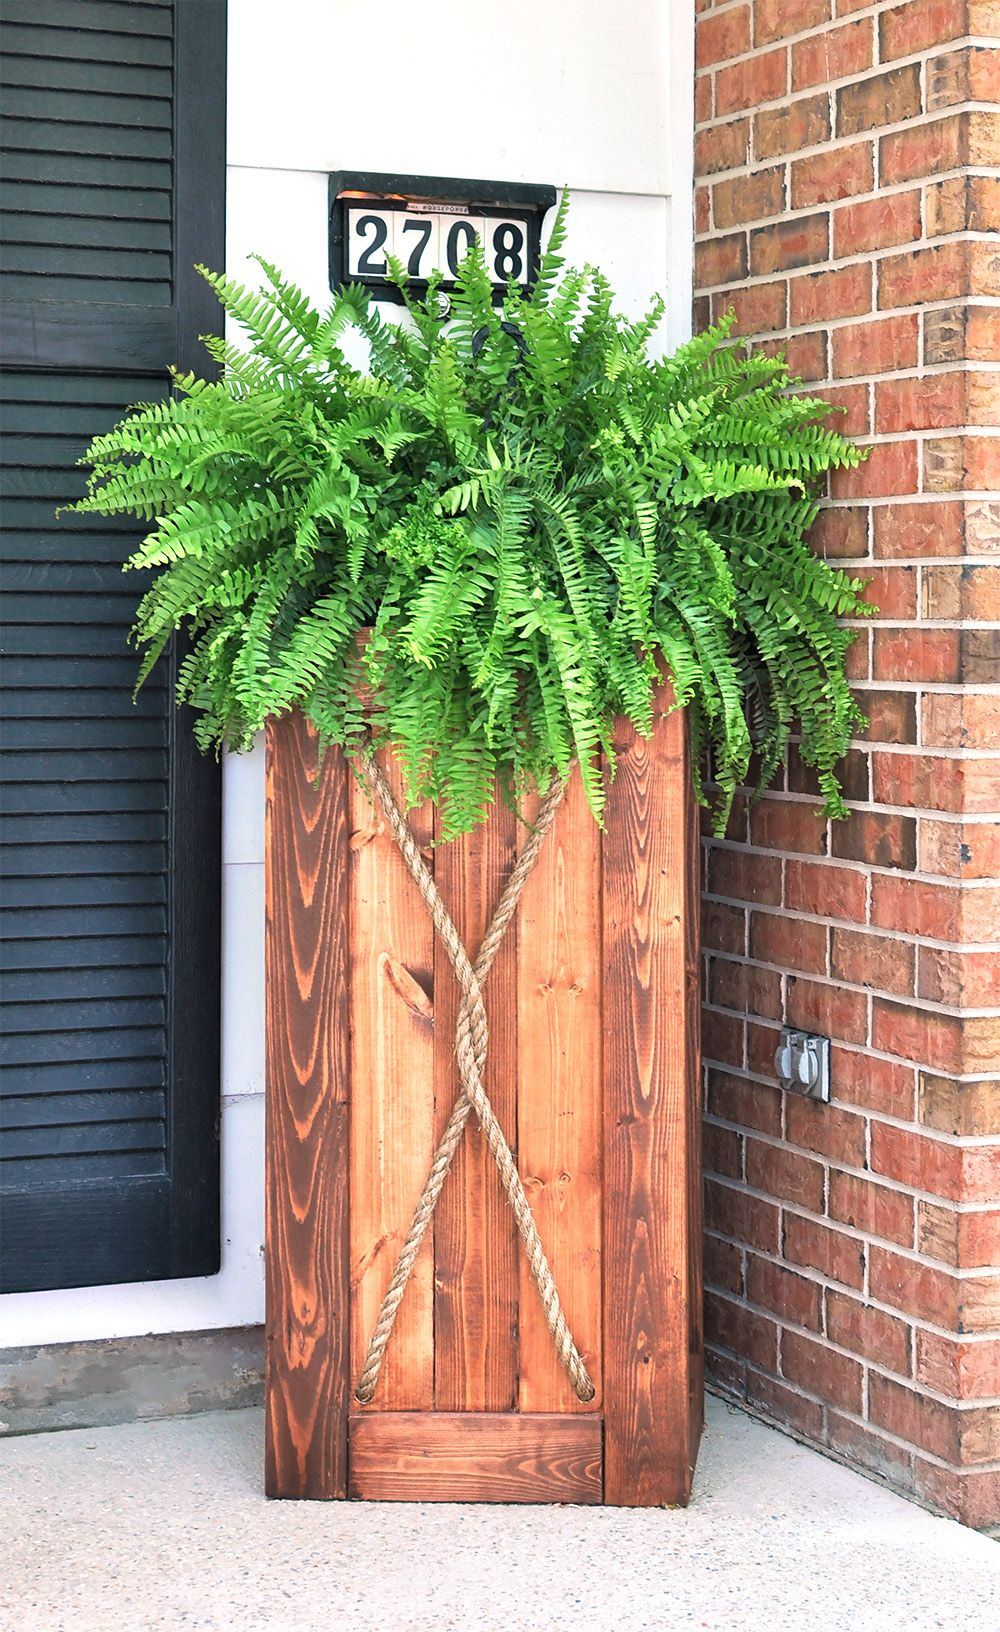 3 Foot Tall Entrance Planter DIY PROJECT Homesteading The